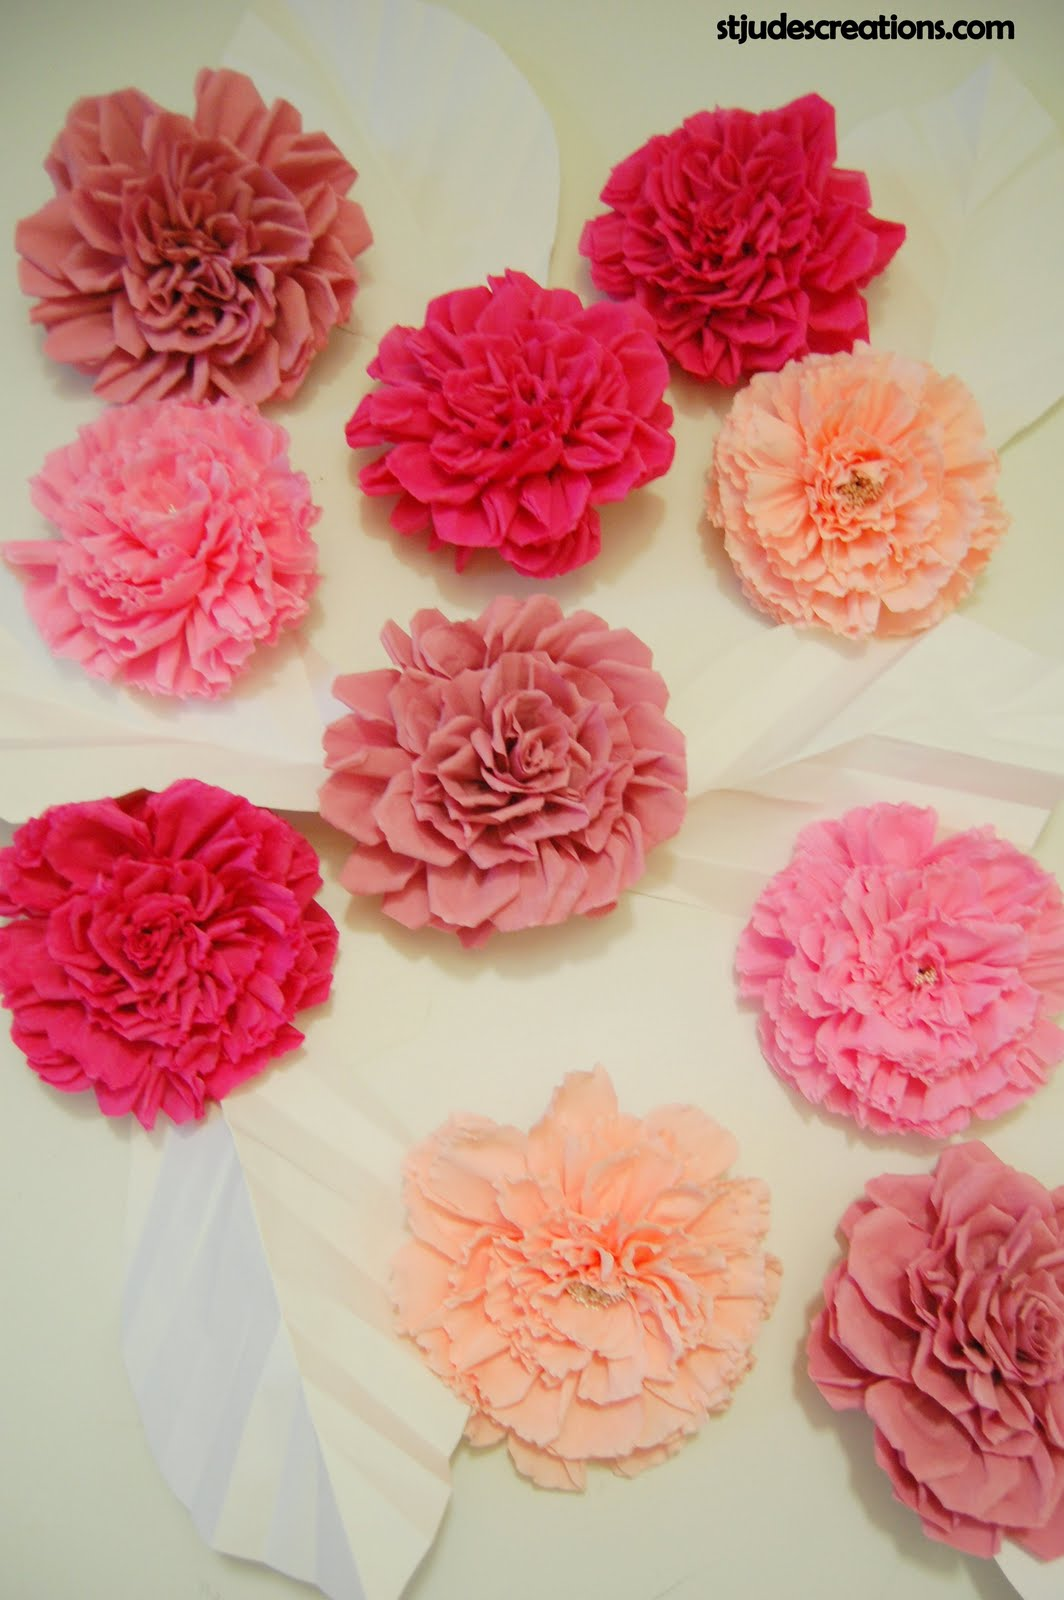 Chanel Inspired Large Paper Flower Wall Backdrop Handmade Paper